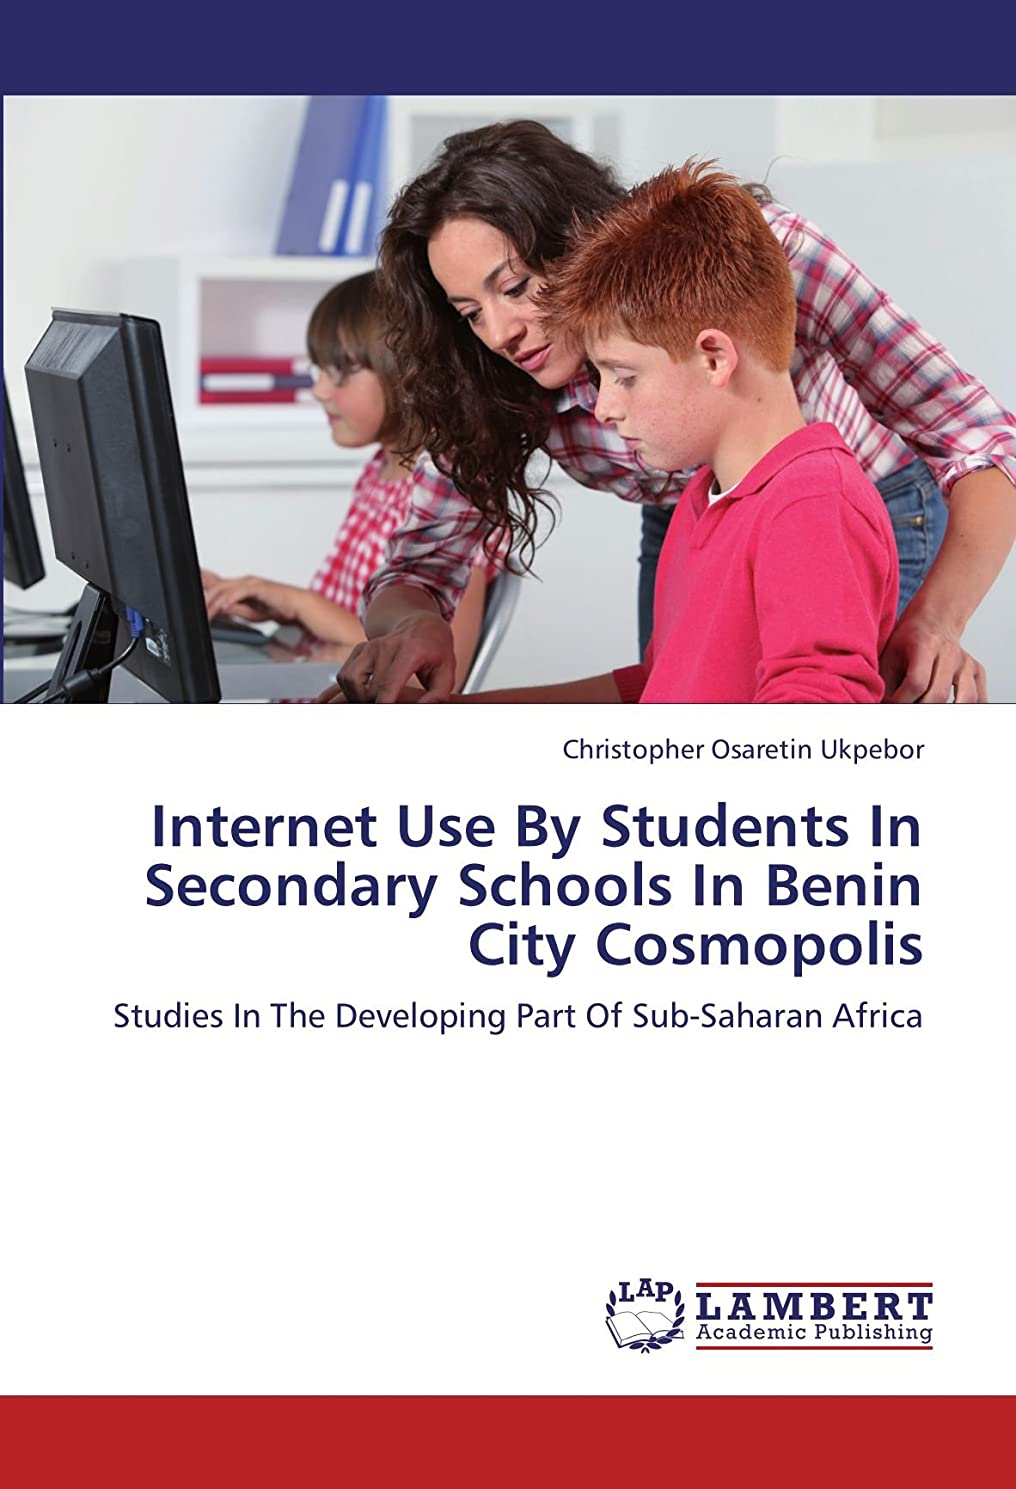 孤児悲しいことに傾向がありますInternet Use by Students in Secondary Schools in Benin City Cosmopolis